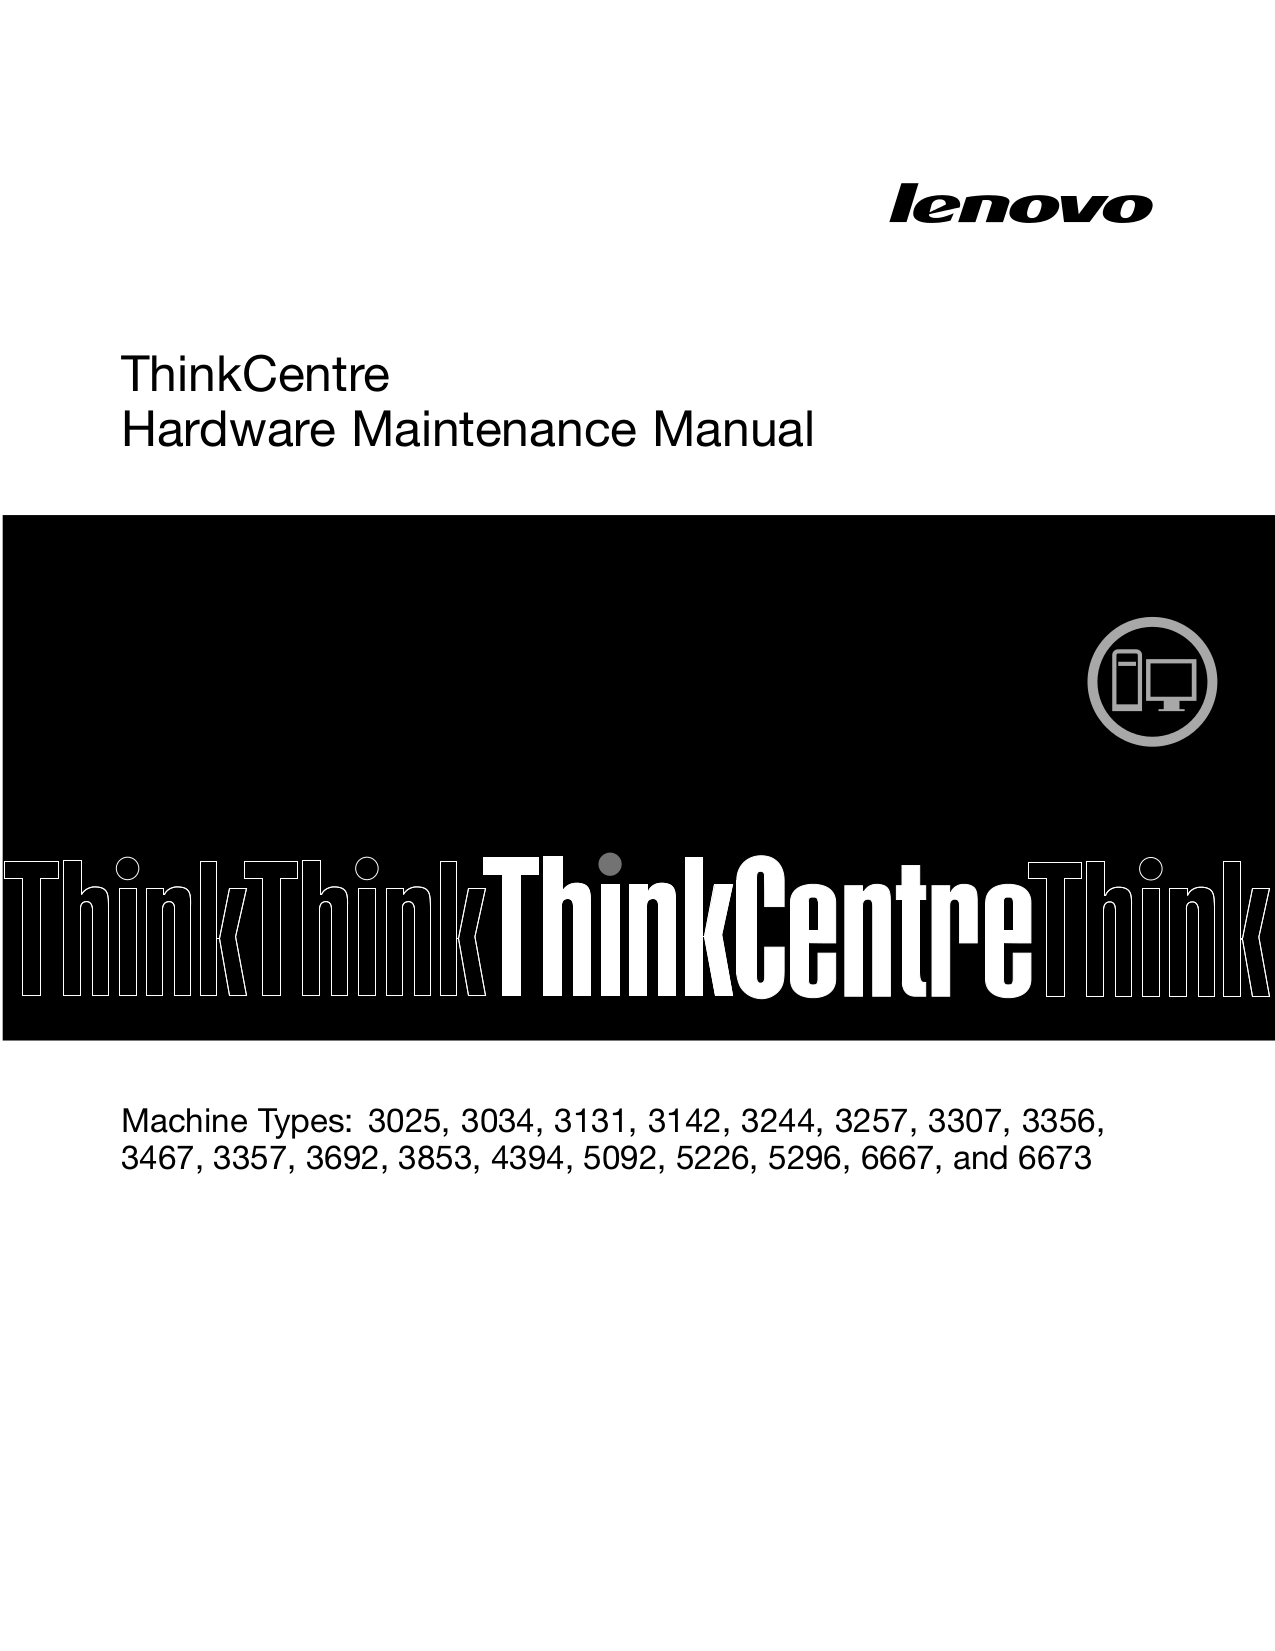 pdf for Lenovo Desktop ThinkCentre M90 3467 manual